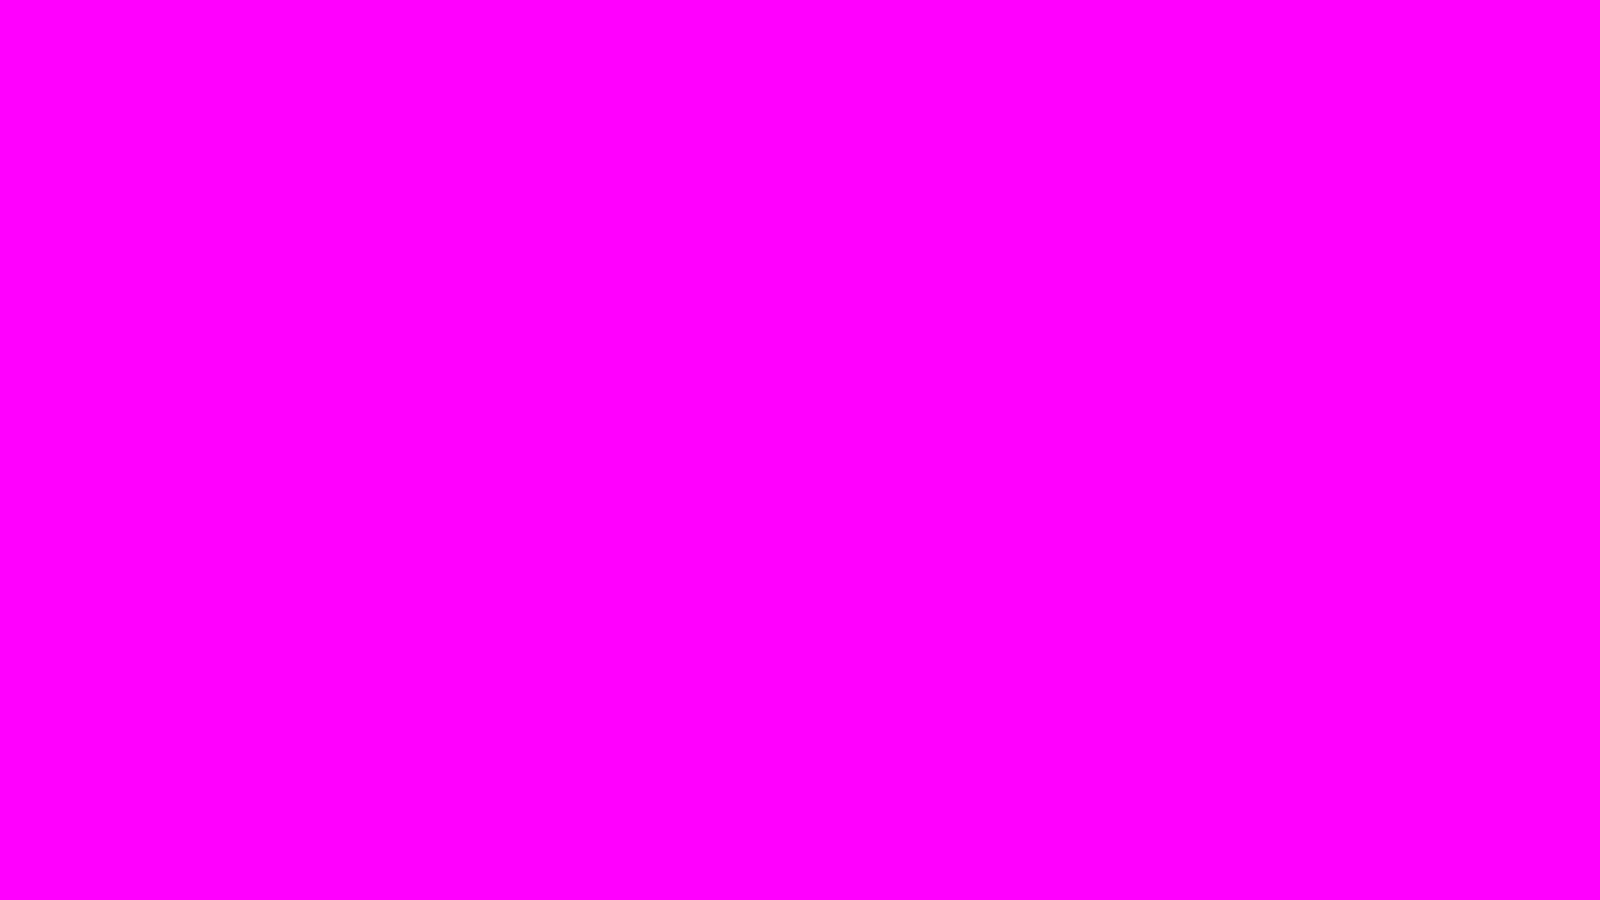 1600x900 Magenta Solid Color Background